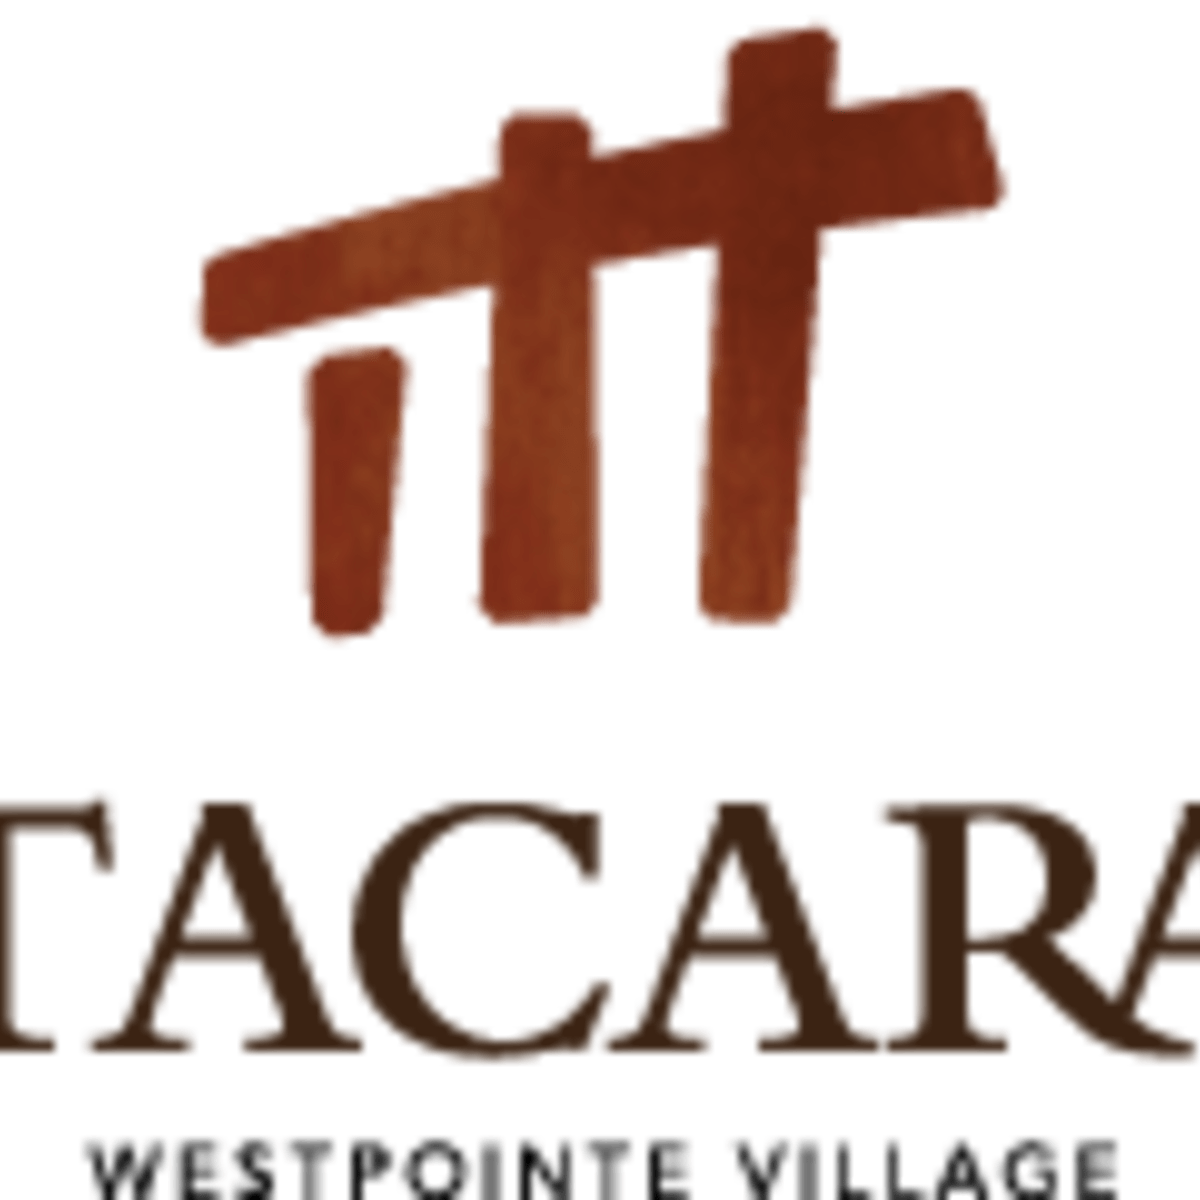 Apartmentguide Com Nj: Contact Tacara Westpointe Village In New Braunfels, TX